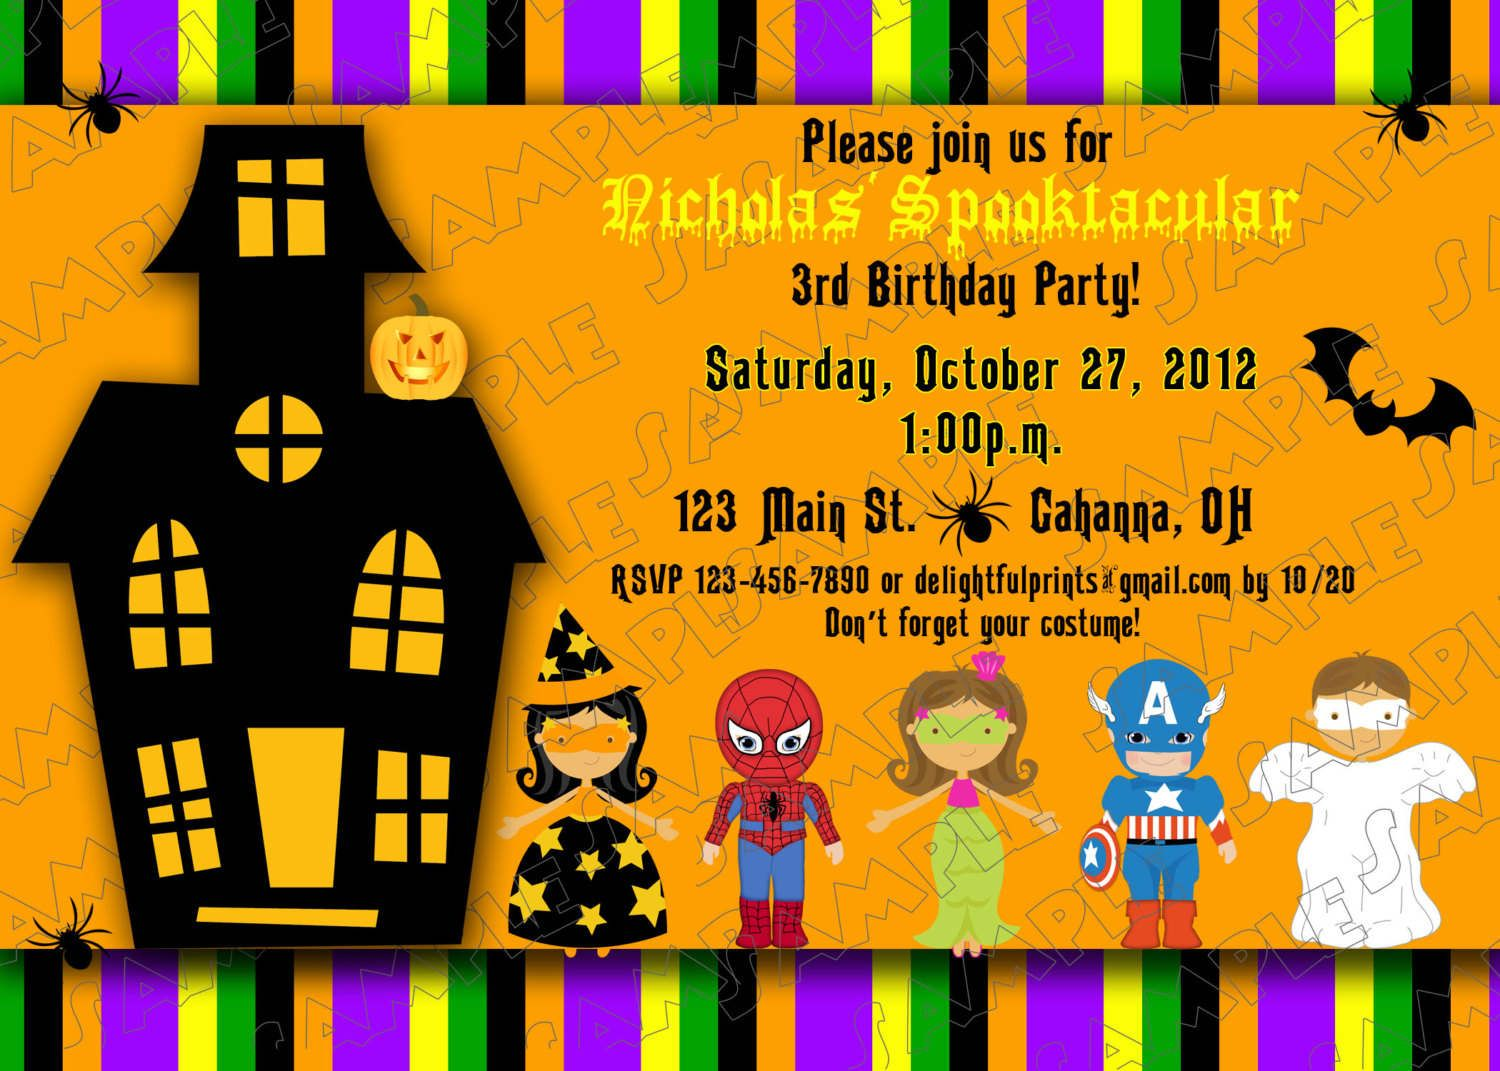 halloween kids birthday party invitations – Free Printable Party Invitations for Kids Birthday Parties